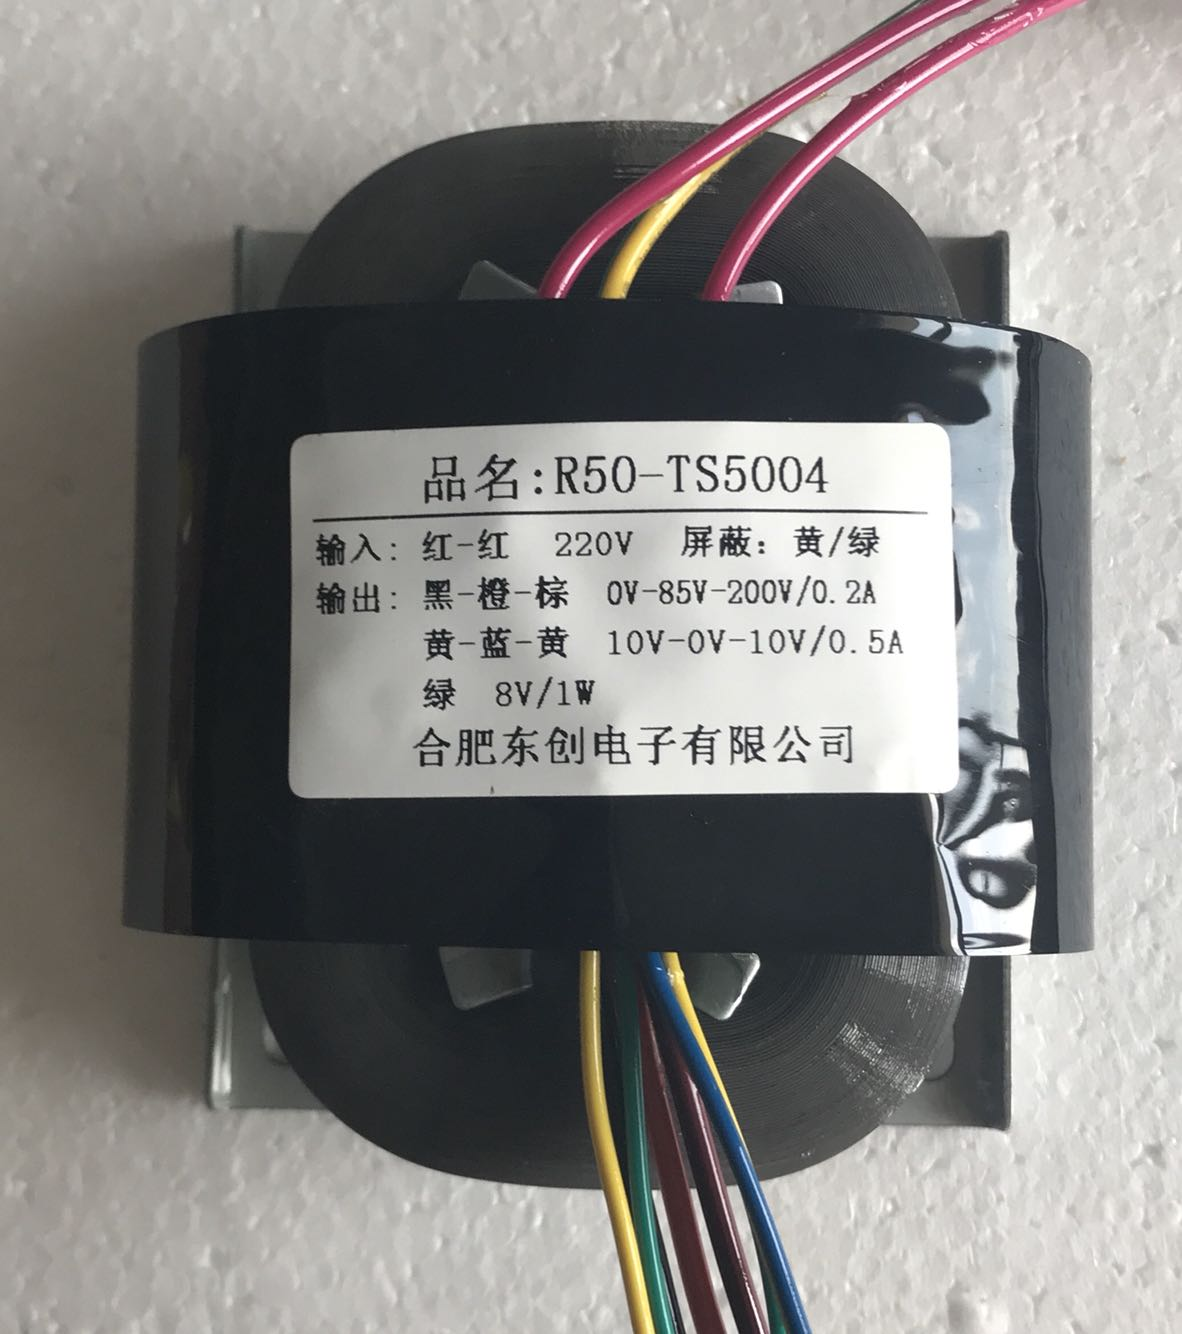 0V-85V-200V  10V-0V-10V 8V R Core Transformer R50 50VA custom transformer 220V with copper shield Pre-decoder Power amplifier0V-85V-200V  10V-0V-10V 8V R Core Transformer R50 50VA custom transformer 220V with copper shield Pre-decoder Power amplifier